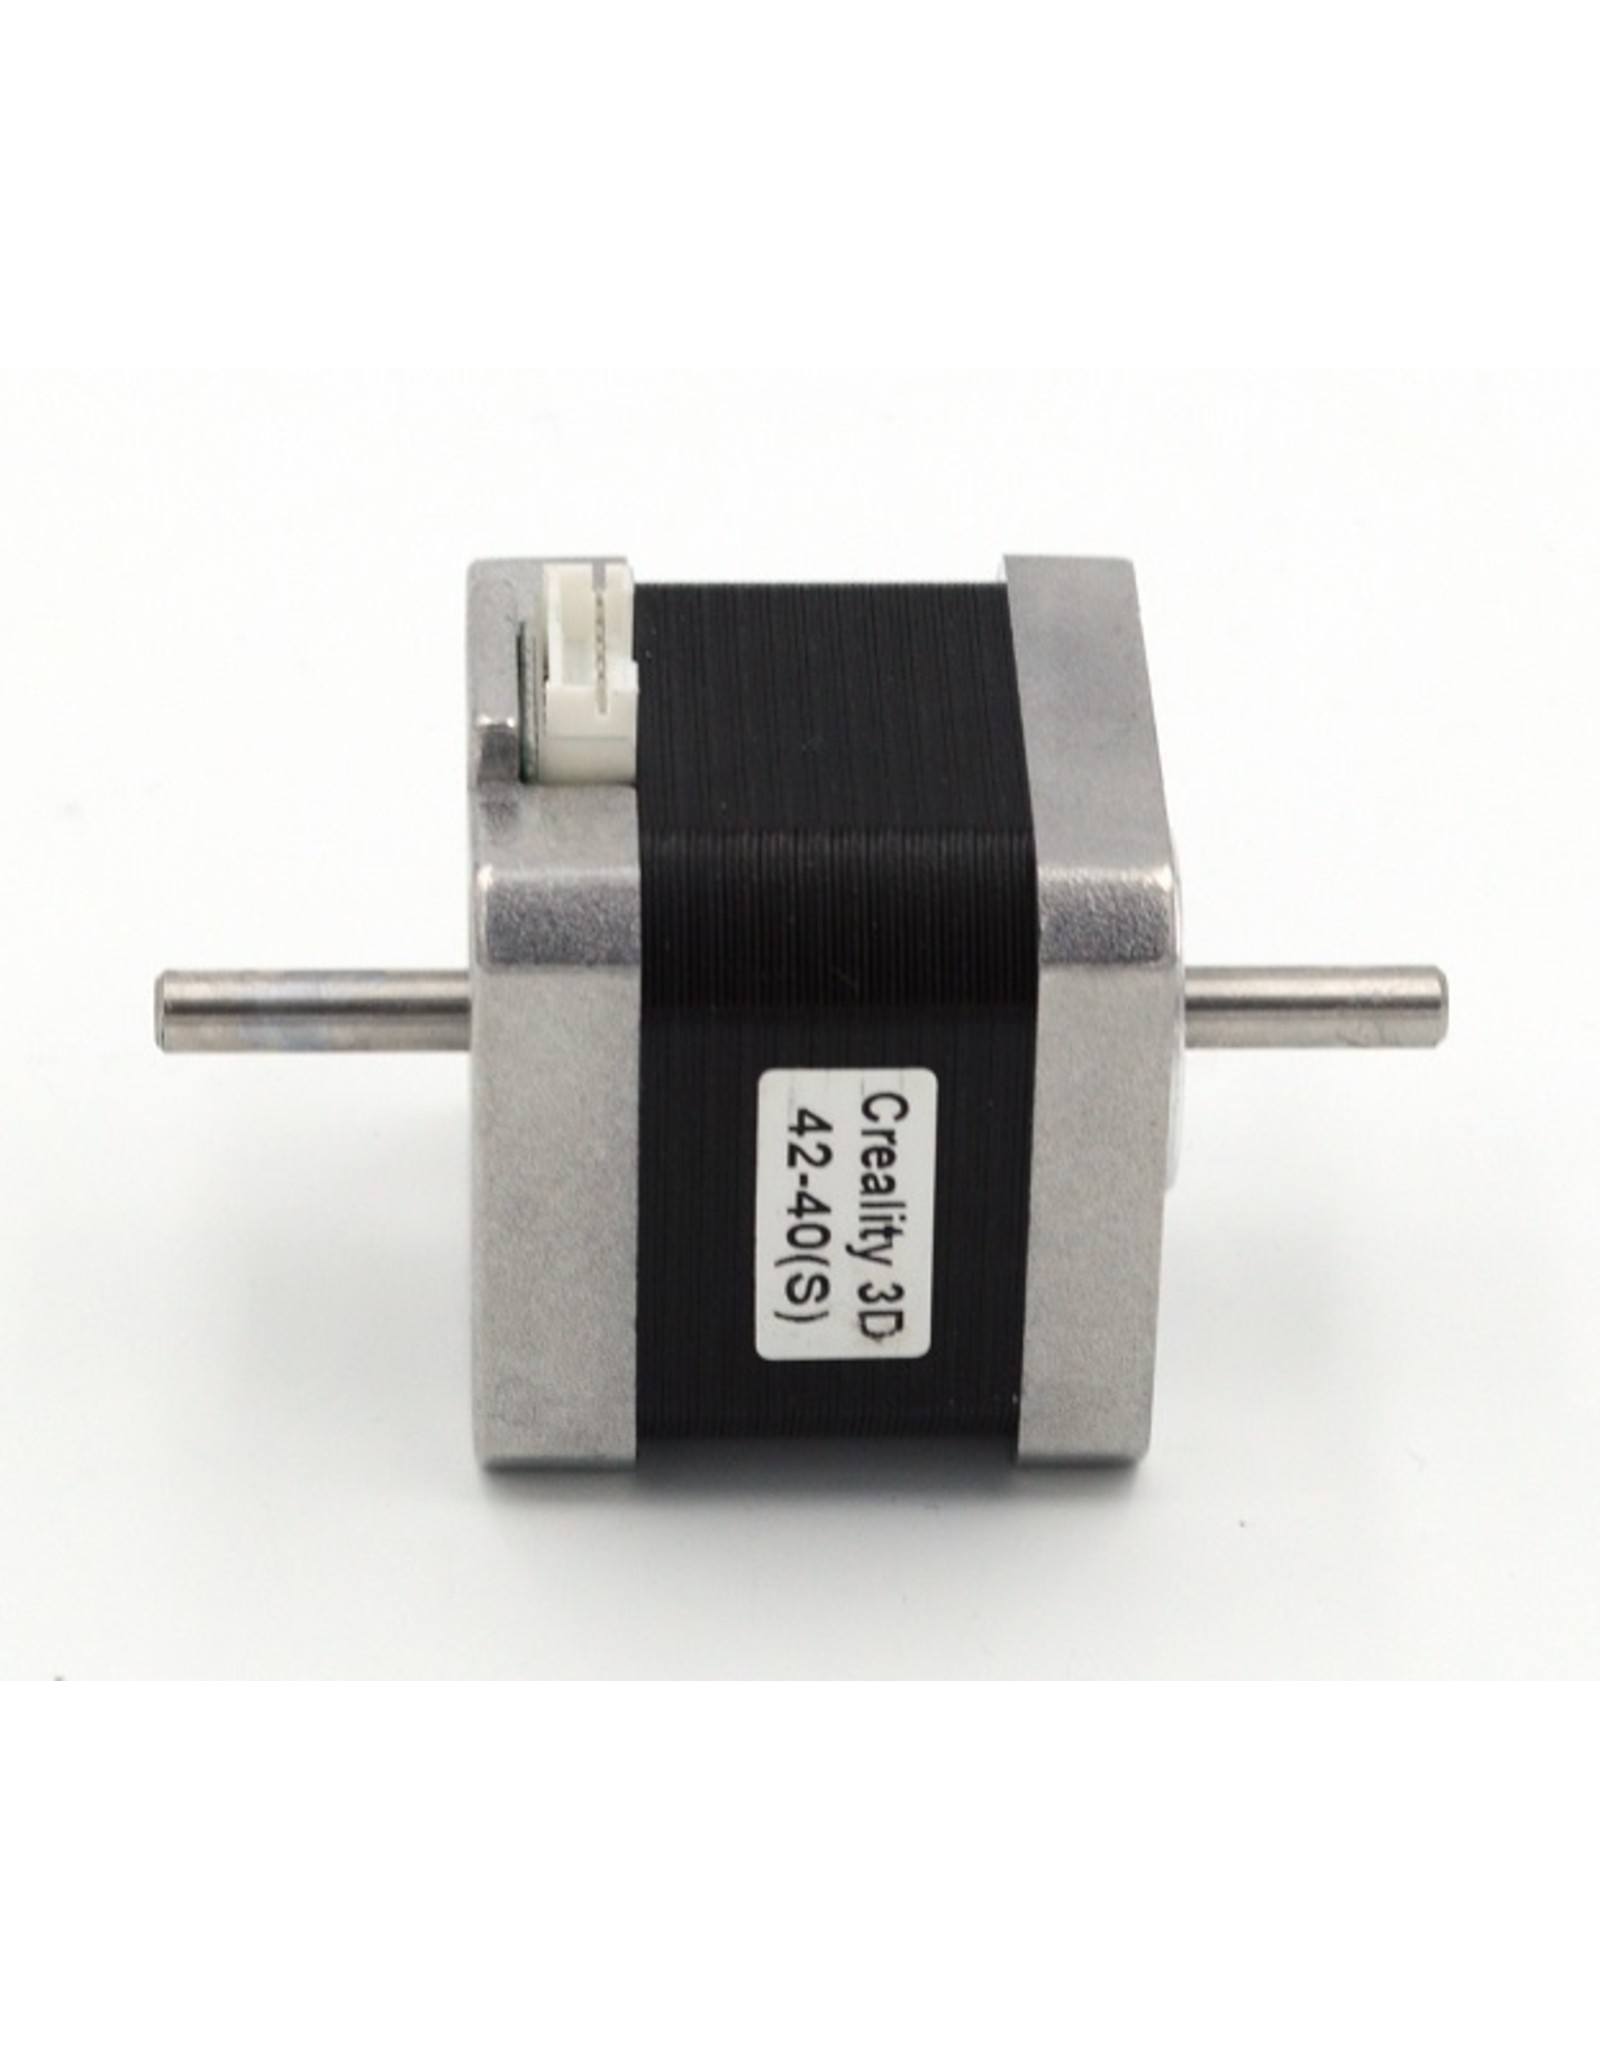 Creality/Ender Creality 3D 42-40 Stepper Motor with Dual Shaft